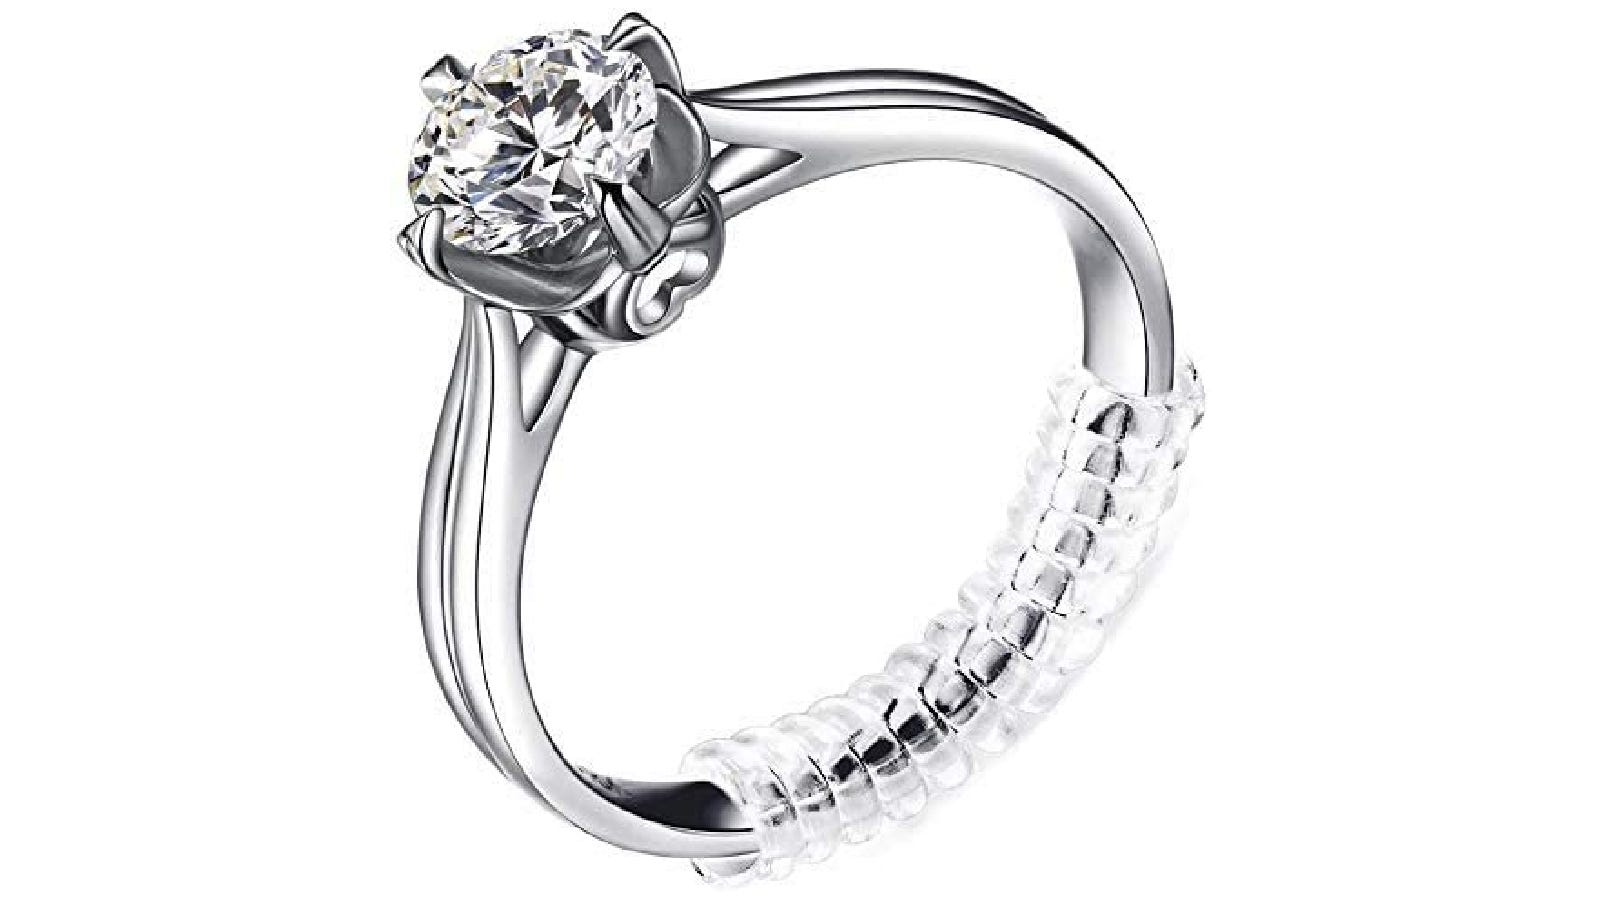 A silver diamond ring with a transparent ring adjuster wrapped around the ring base.